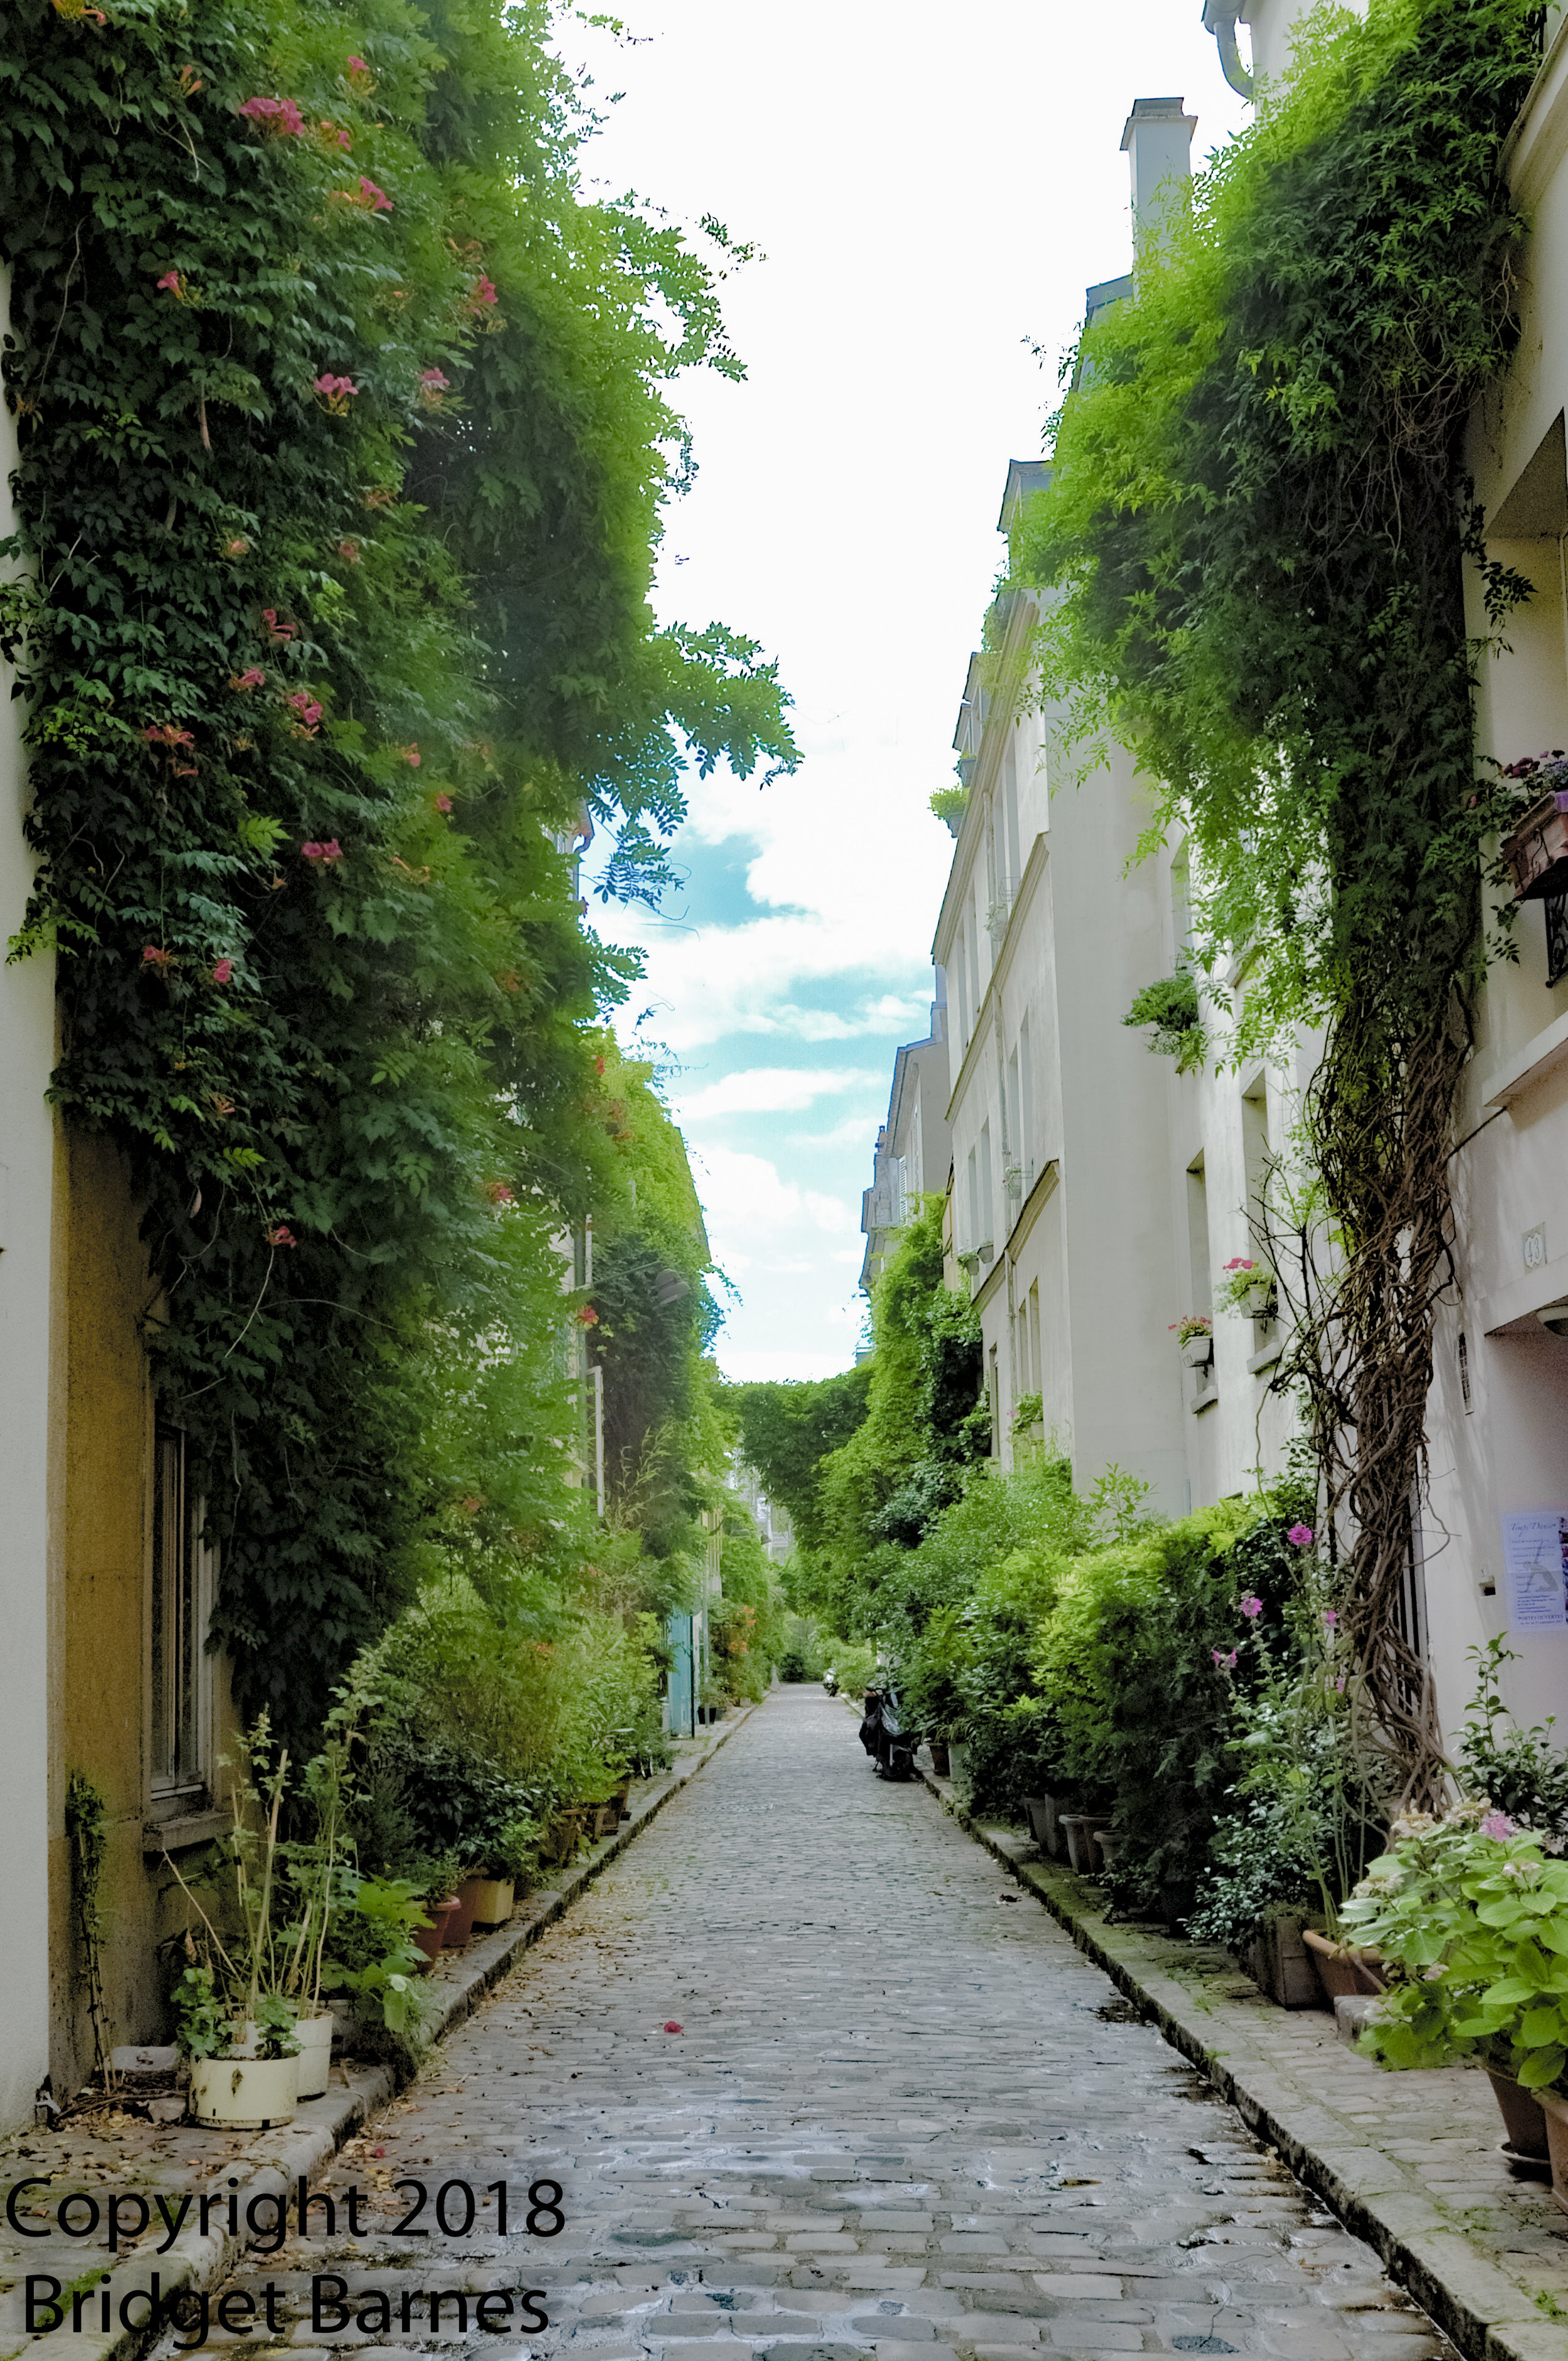 Rue des Thermopyles is a touch of countryside in the middle of the city.